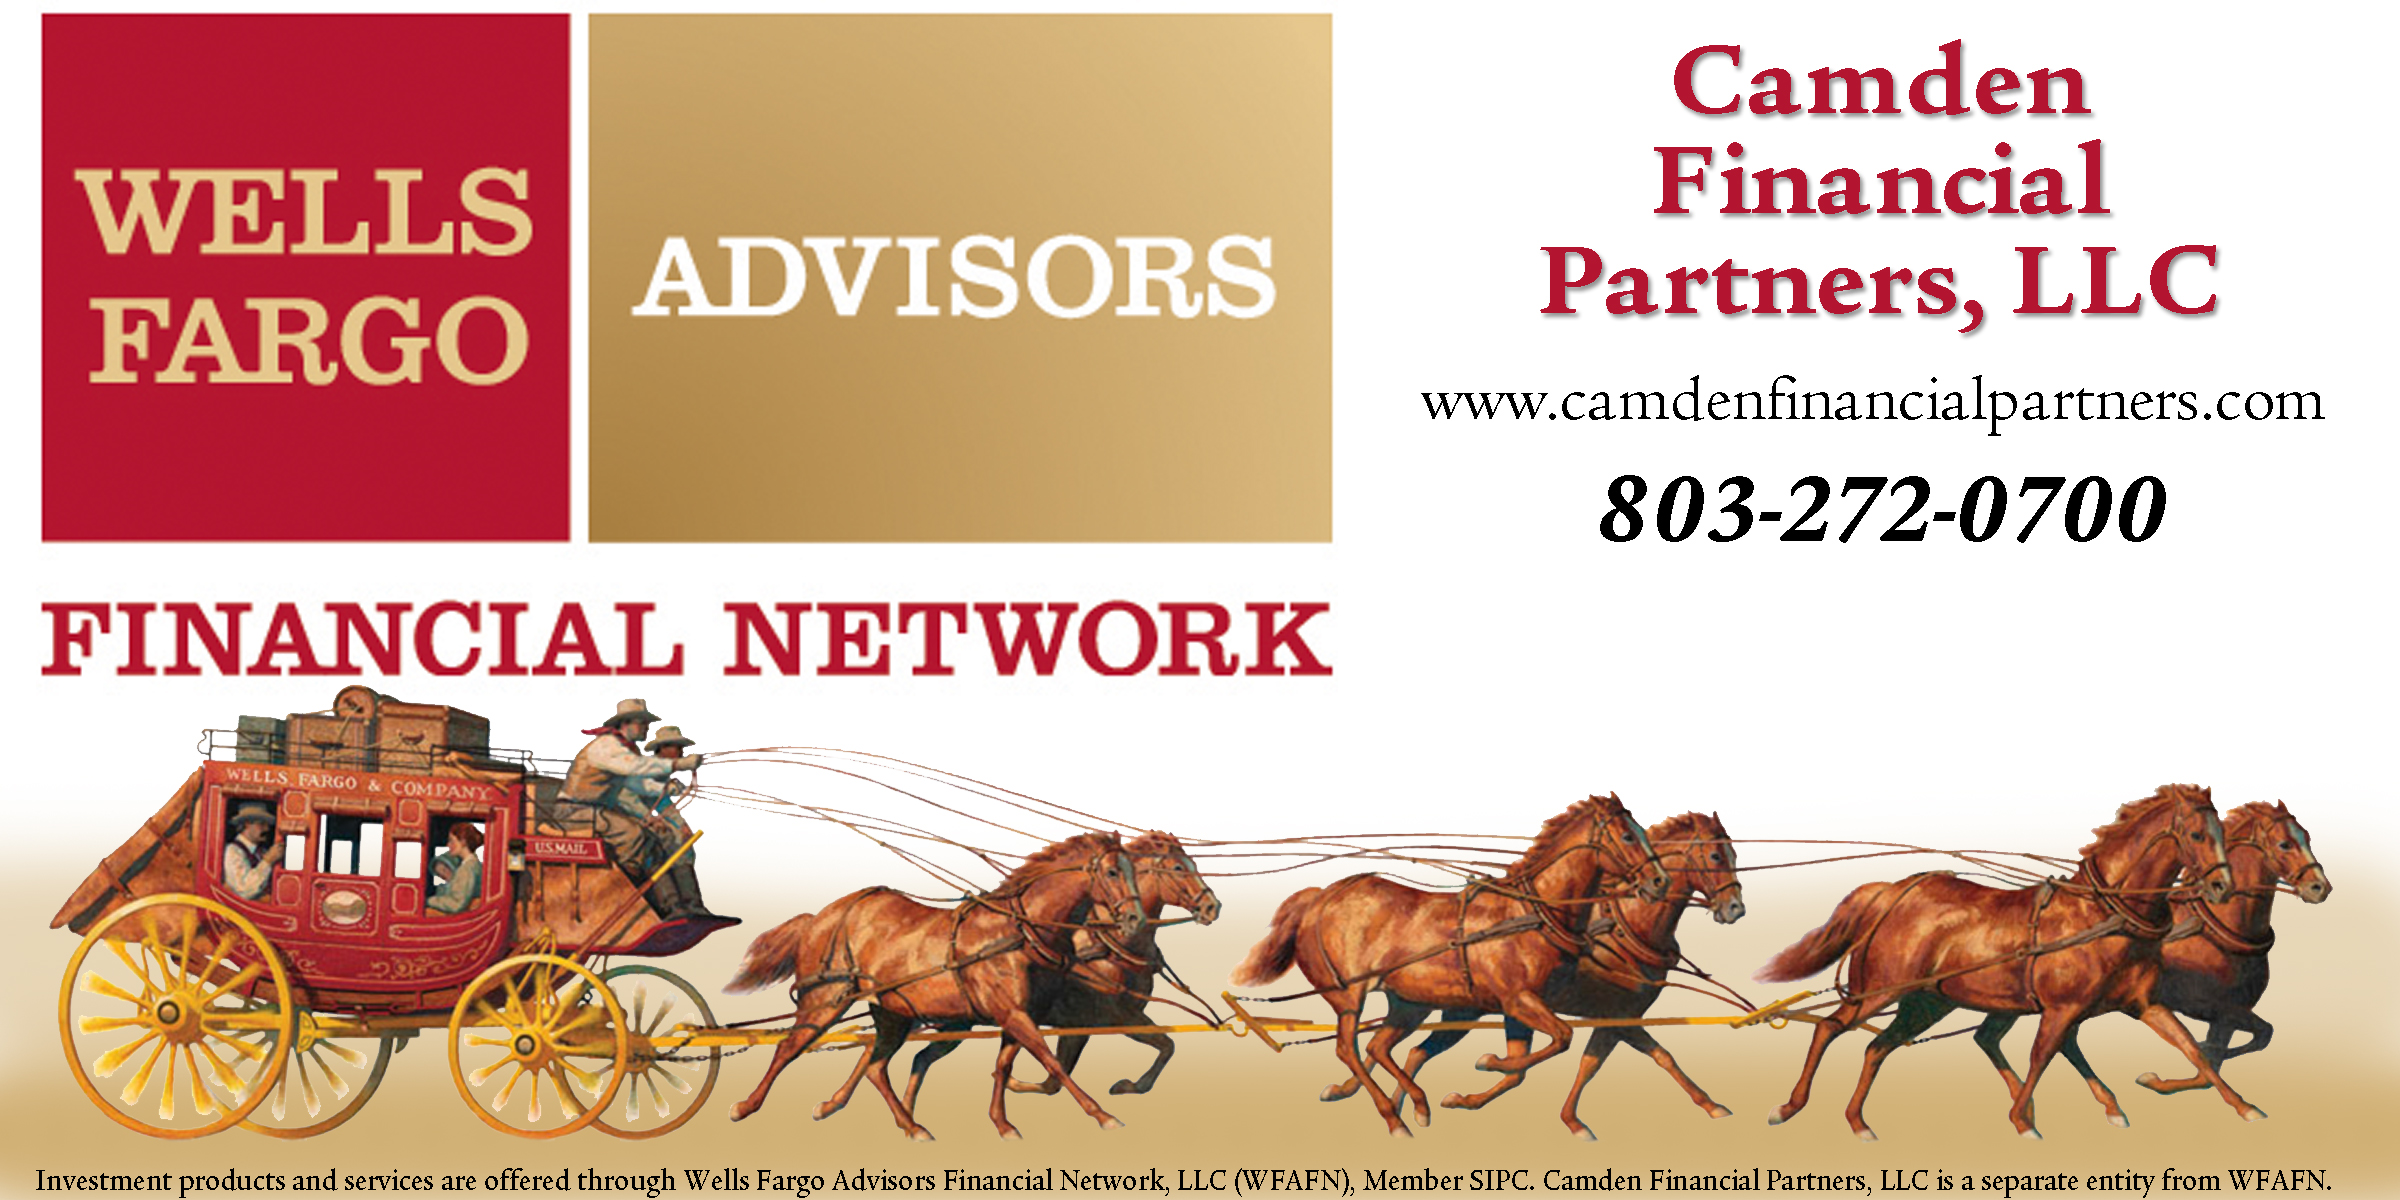 Wells Fargo Advisors -- Camden Financial Partners, LLC